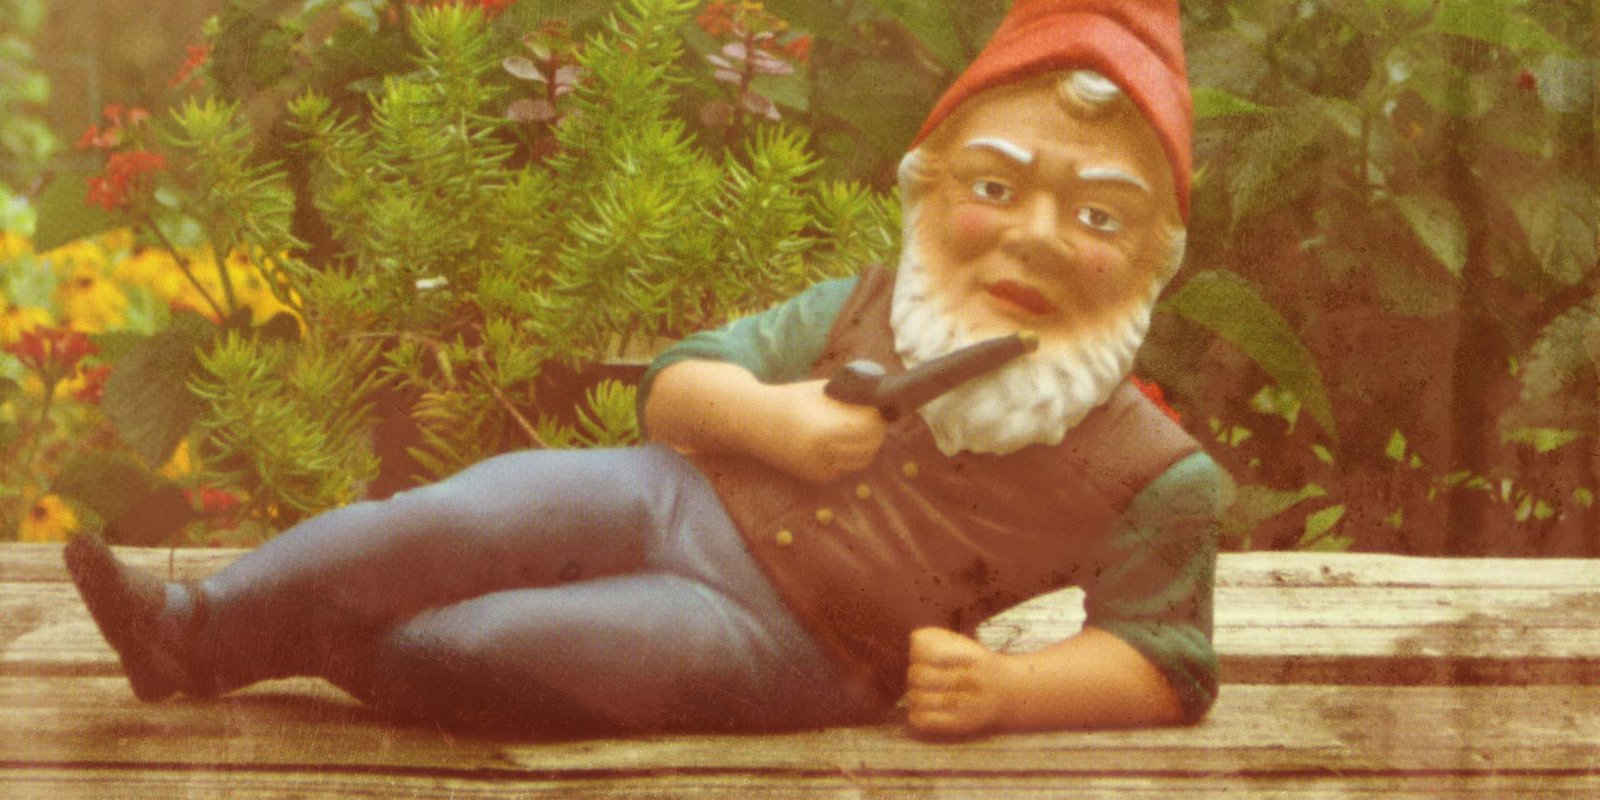 Statue of a reclining garden gnome smoking a pipe